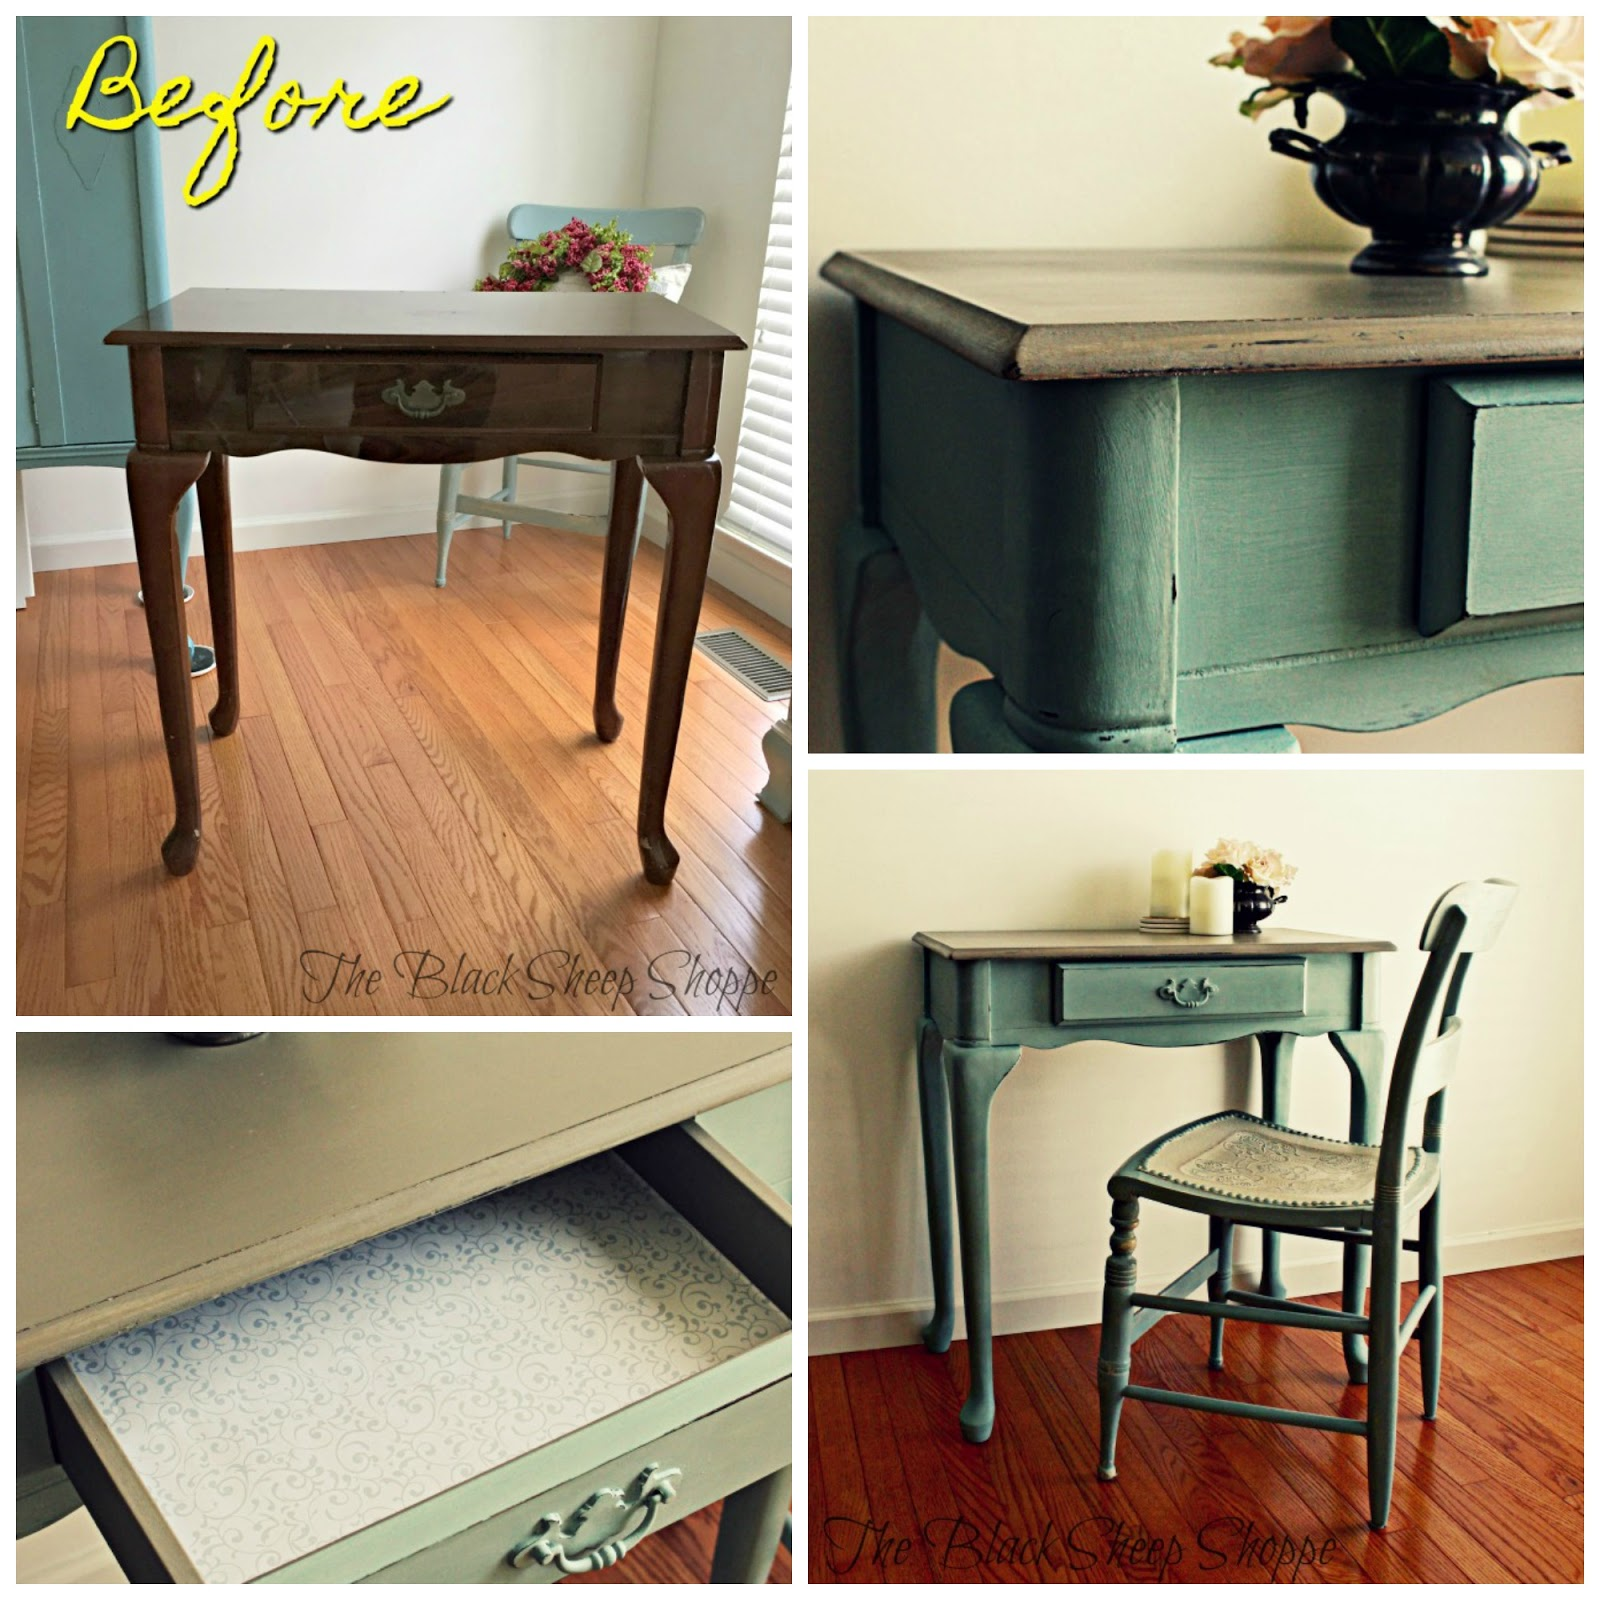 An old make up vanity was transformed with paint.